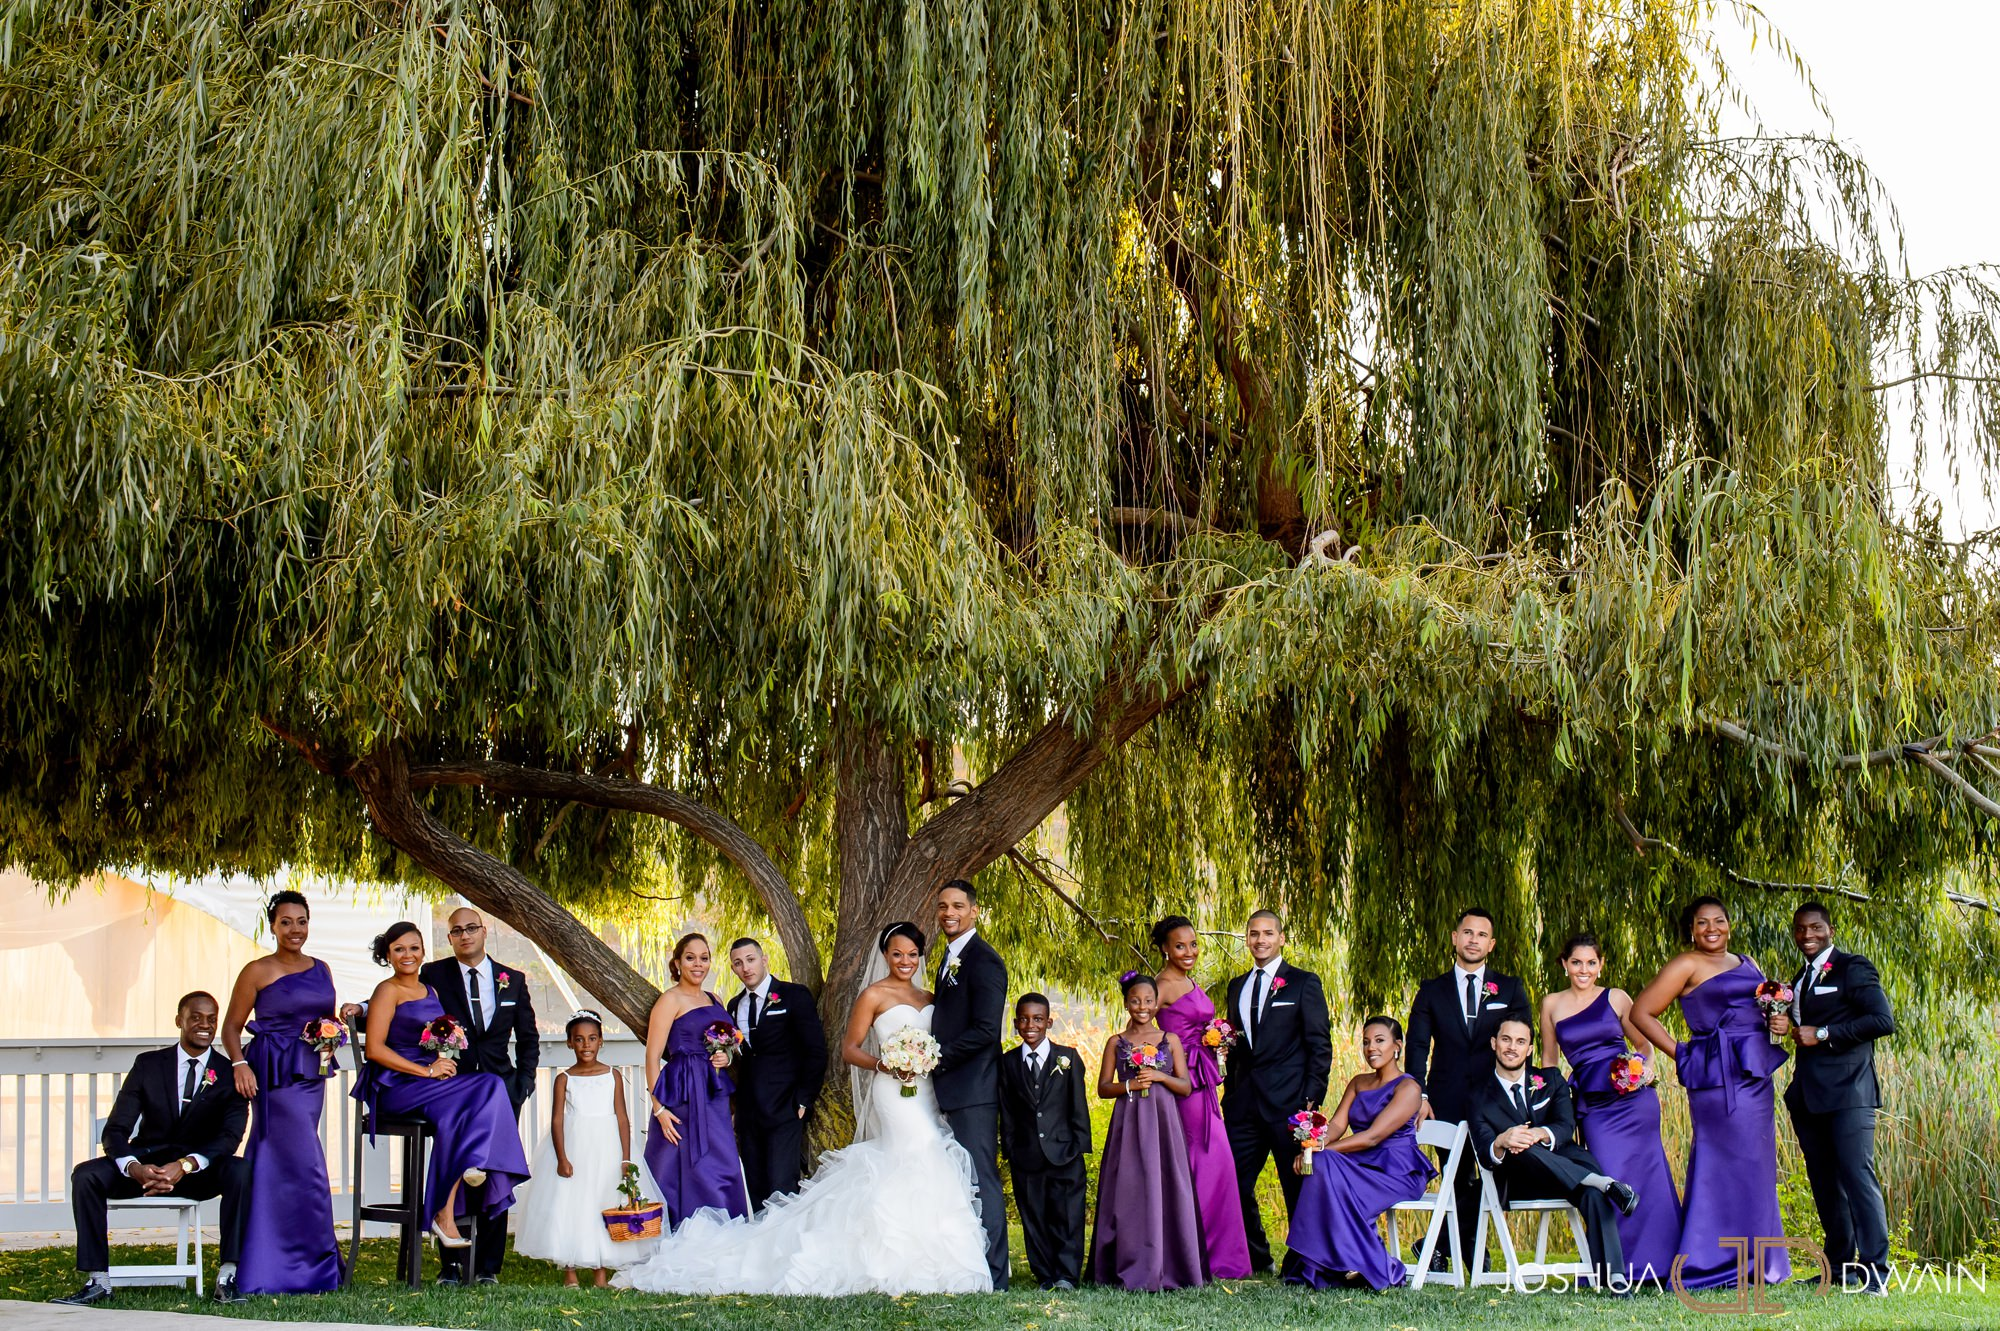 briana-donovan-22-leal-vineyards-winery-wedding-san-francisico-wedding-photographer-joshua-dwain